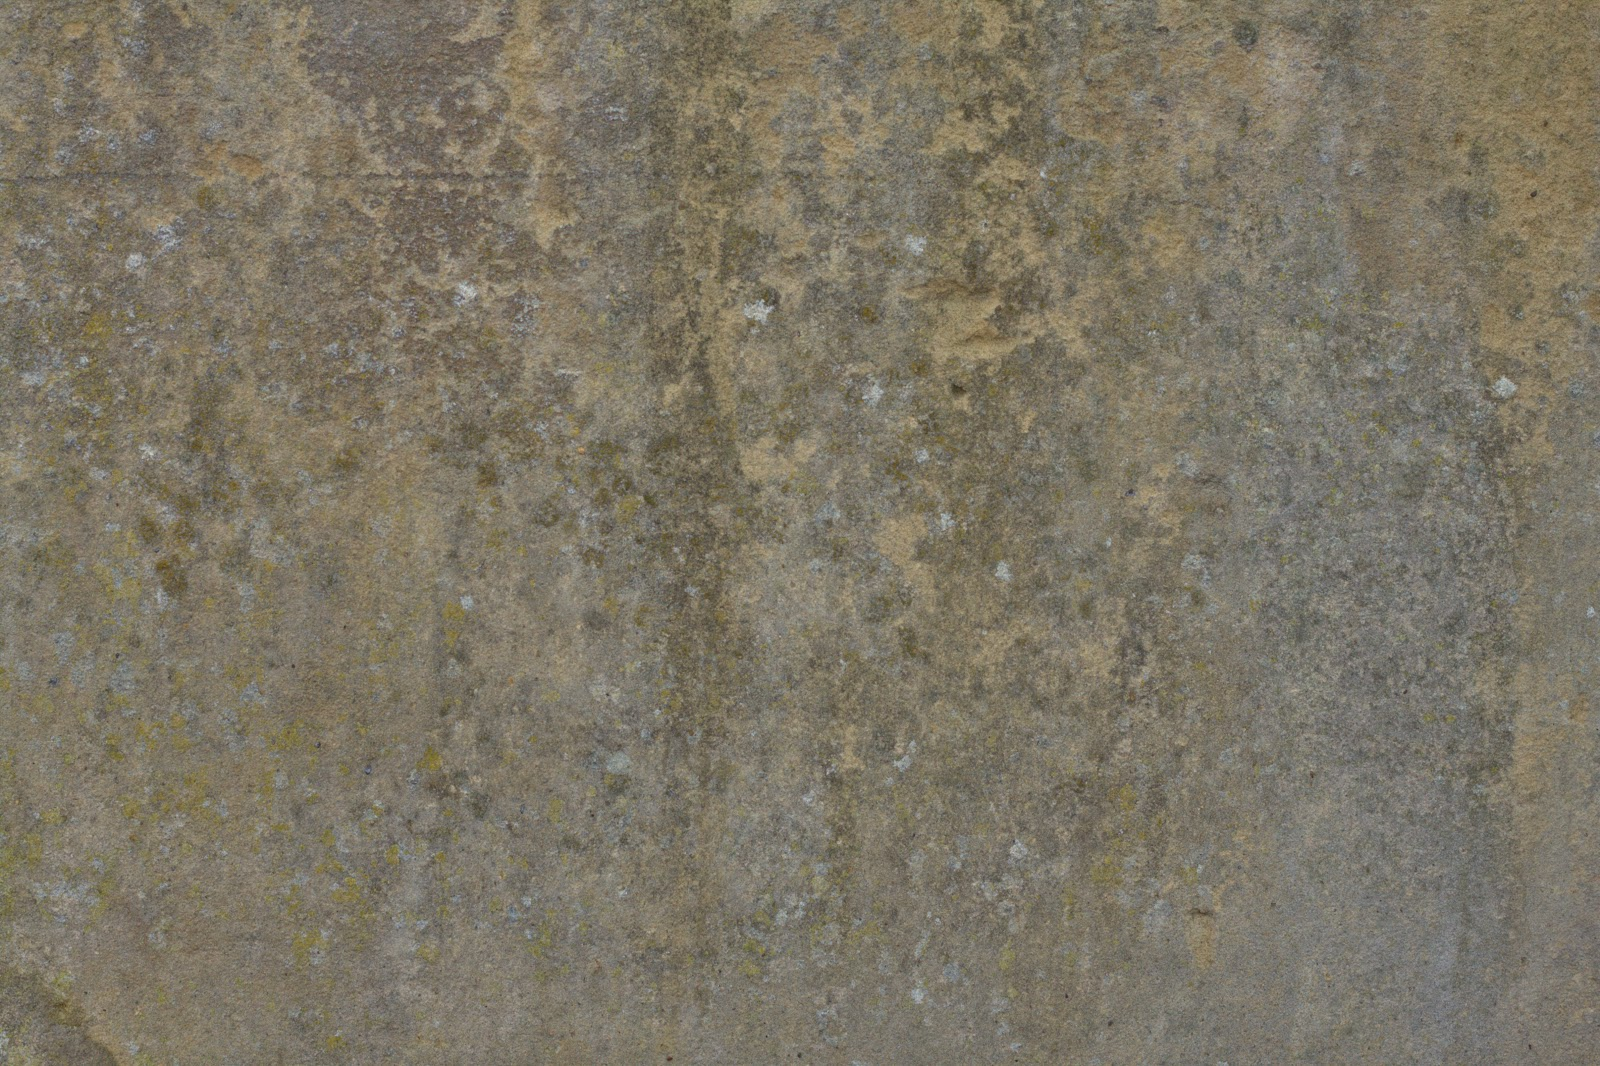 Stucco wall grunge feb_2015_3 texture 4770x3178